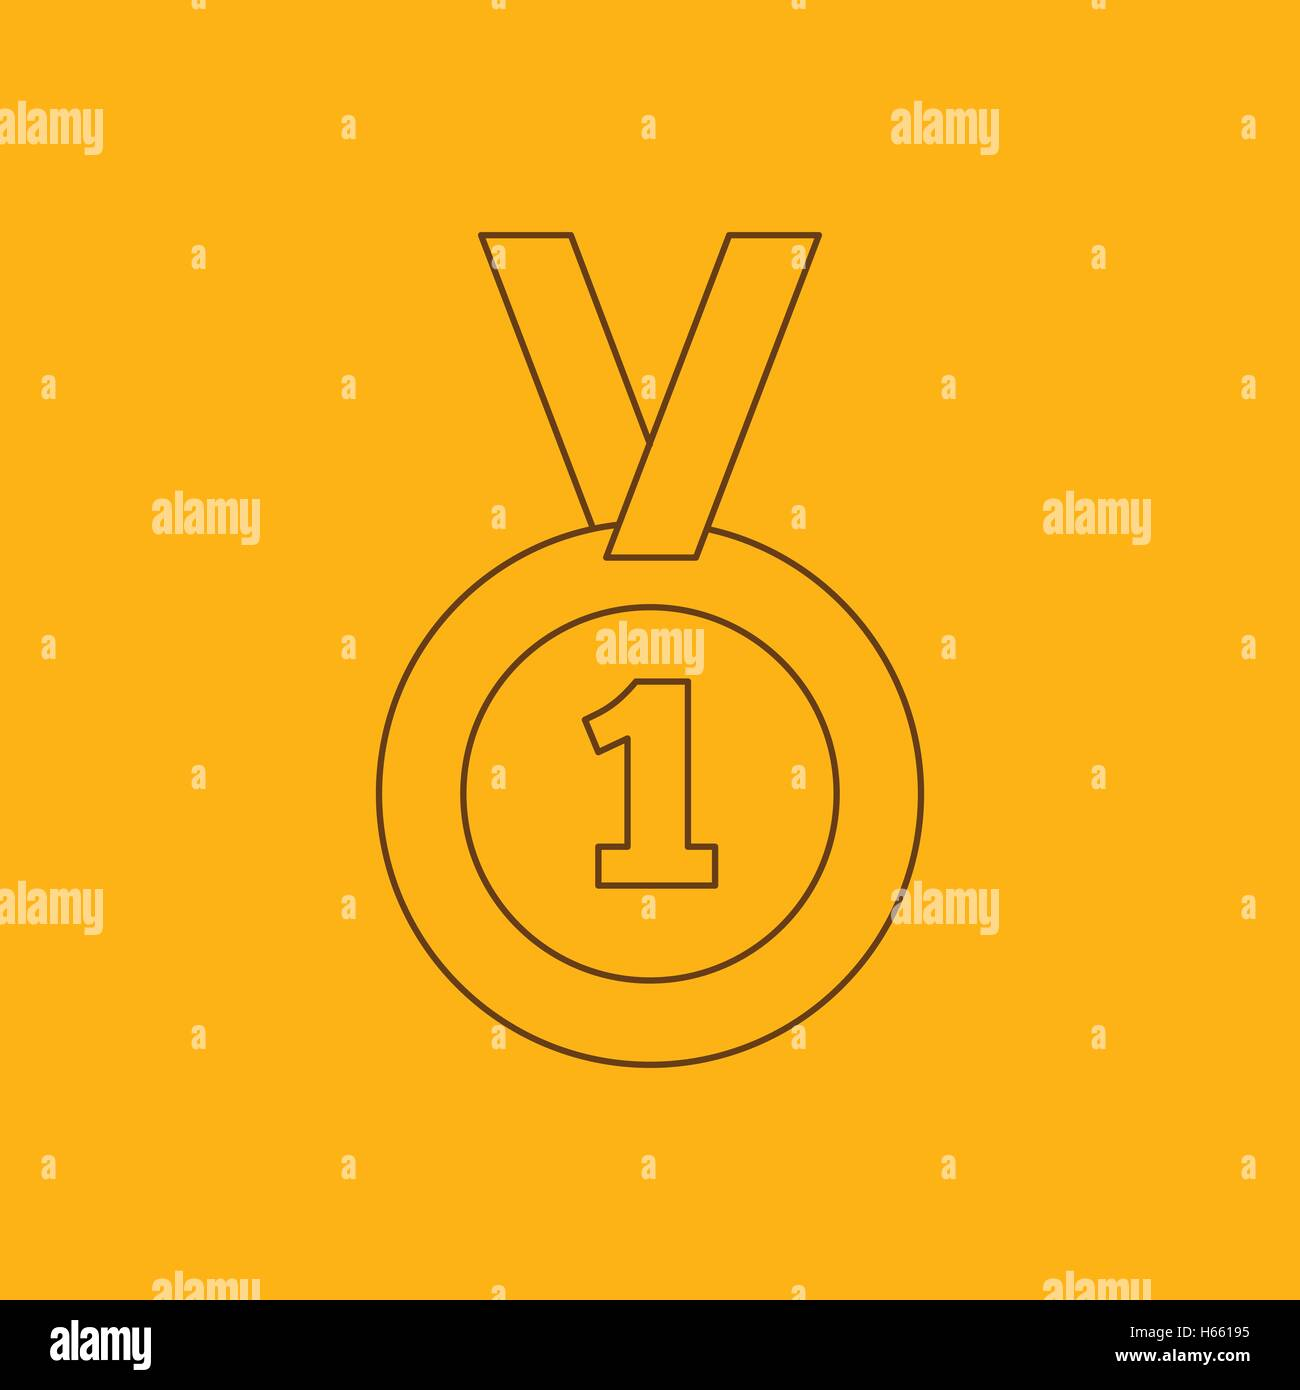 1st place medal line icon - Stock Image